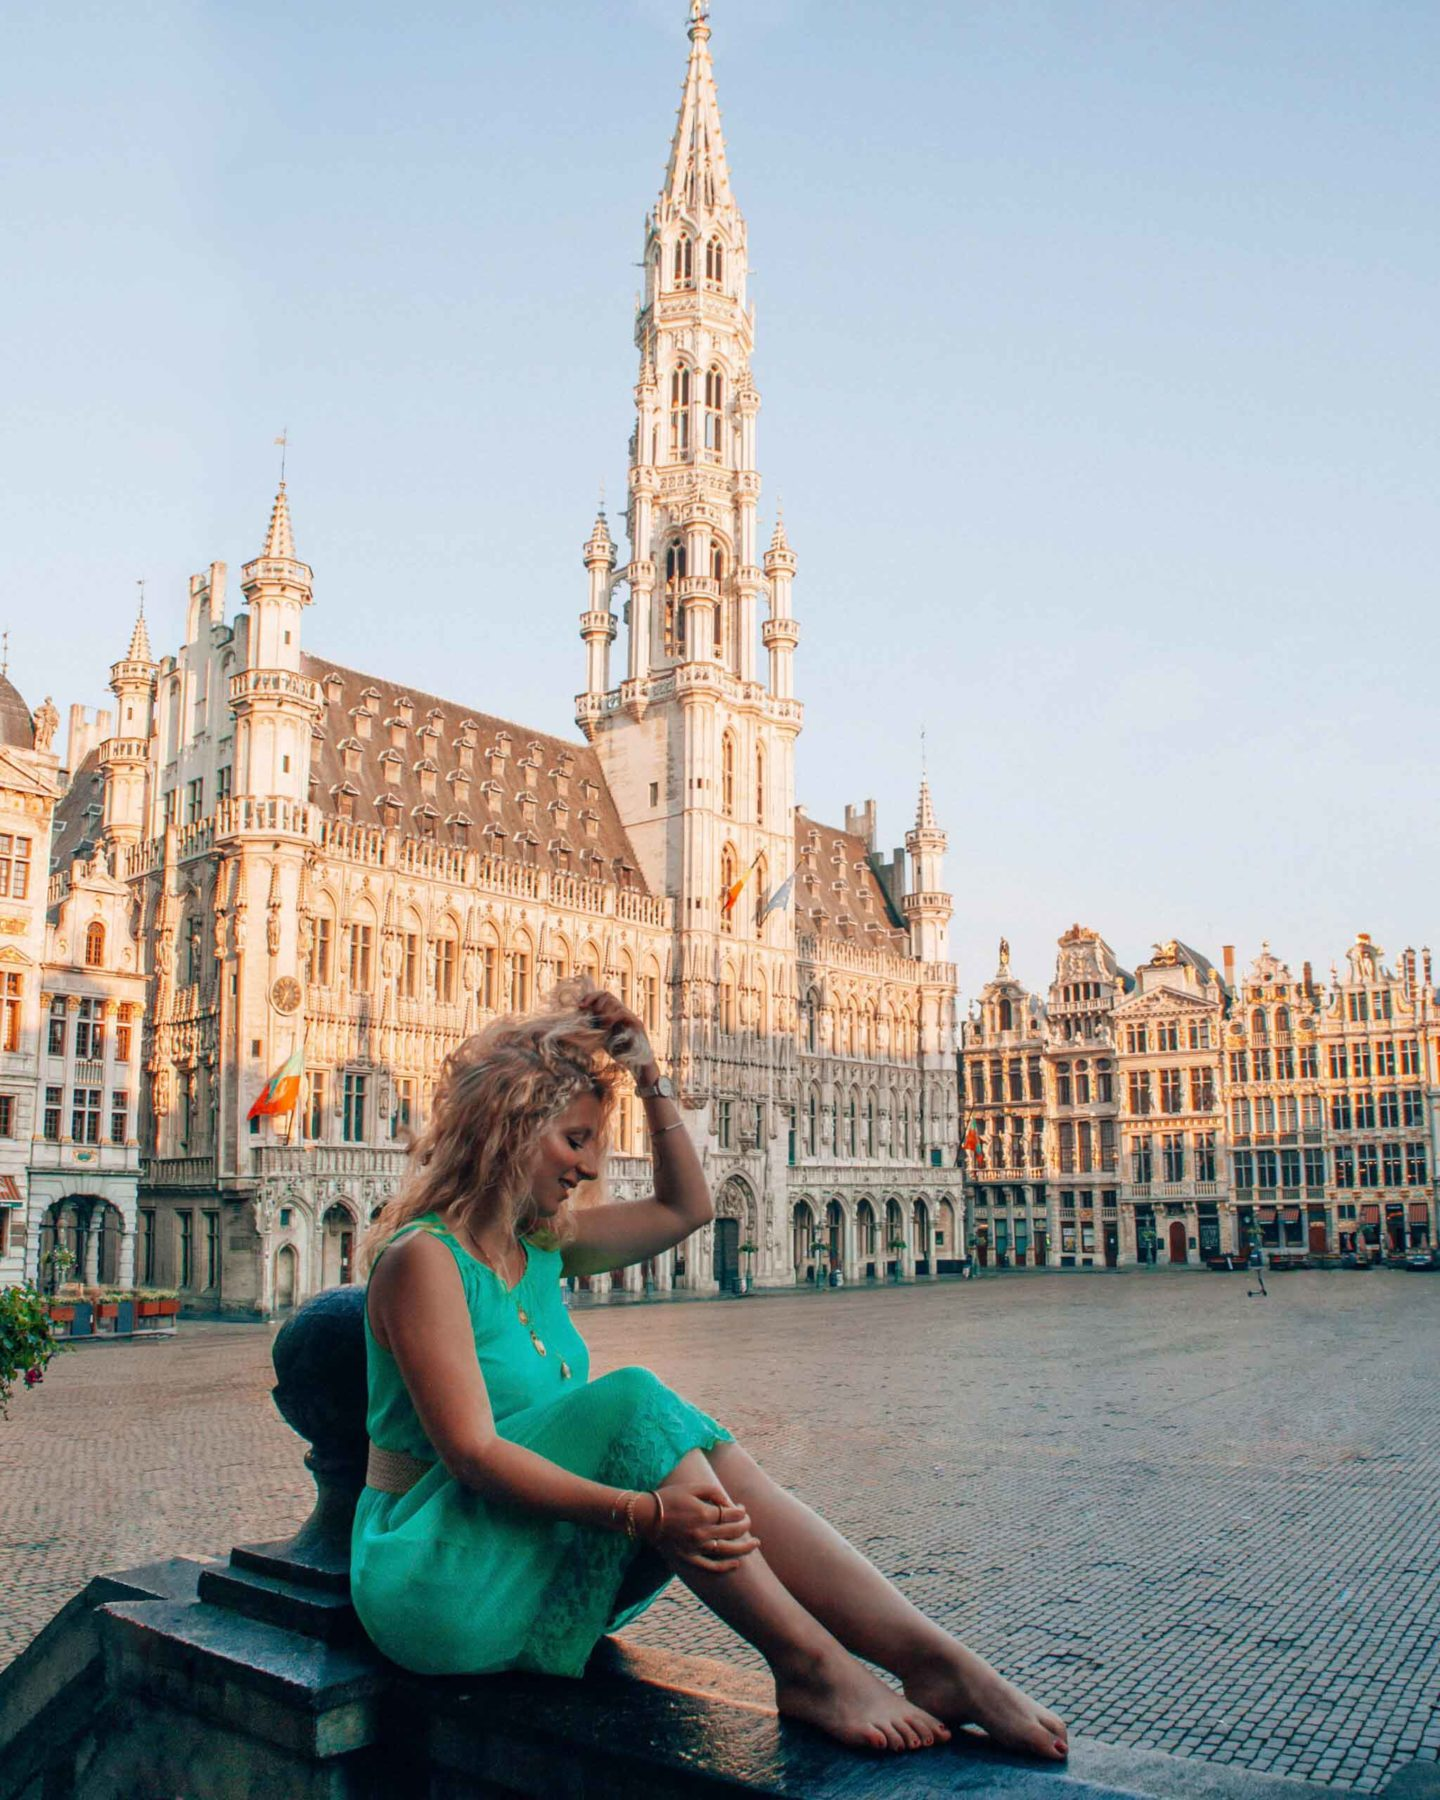 Alone on the Grand Place at sunrise